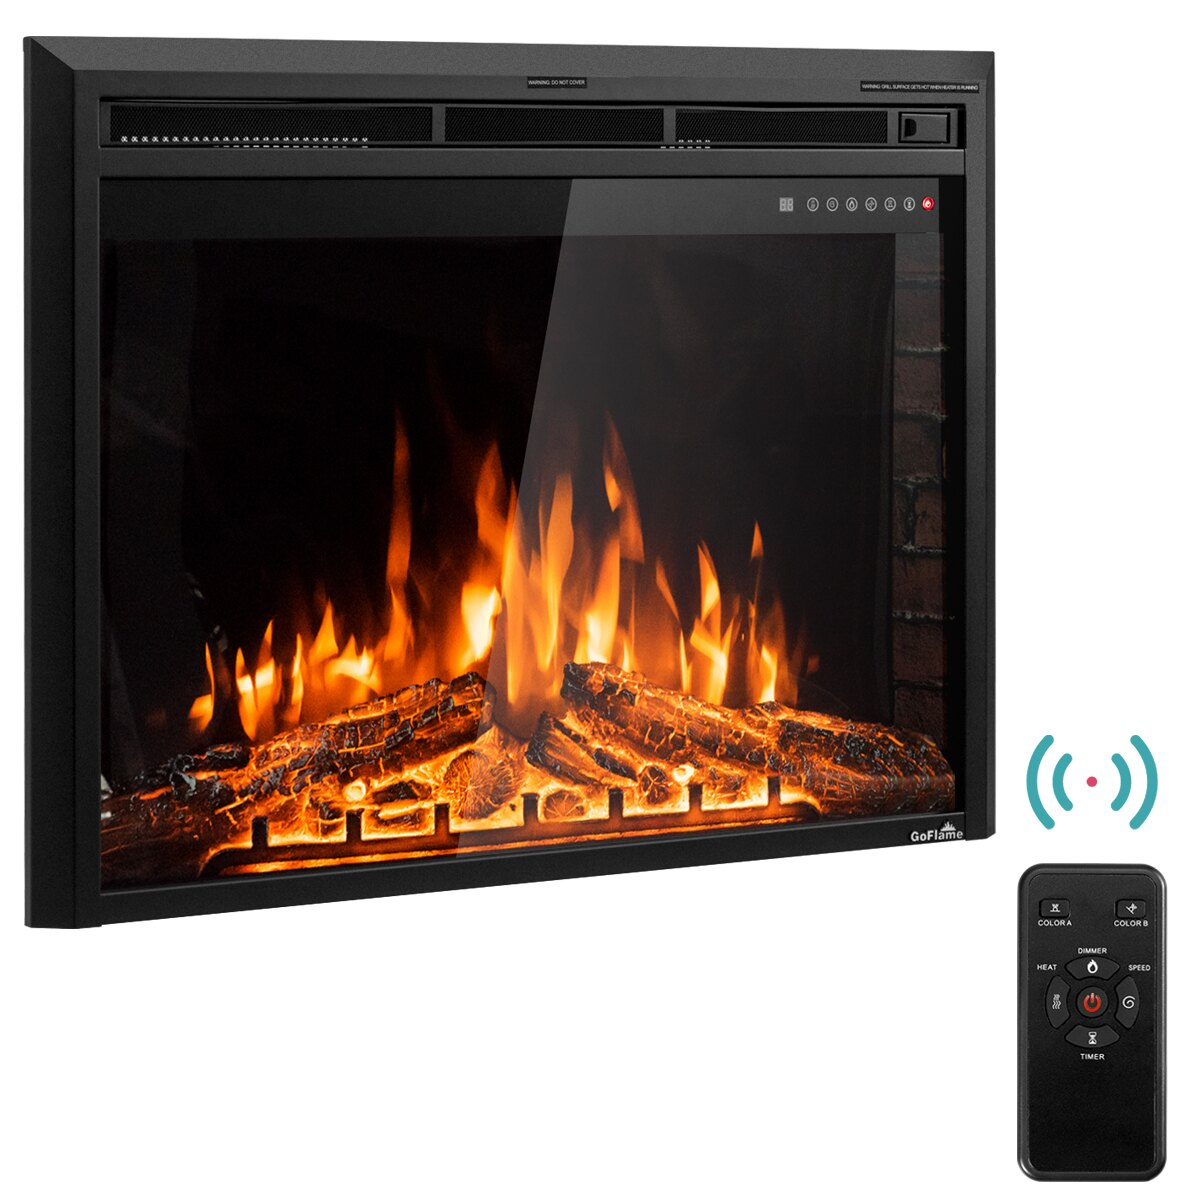 65 Inch Electric Fireplace New Goflame 36 750w 1500w Fireplace Heater Electric Embedded Insert Timer Flame Remote